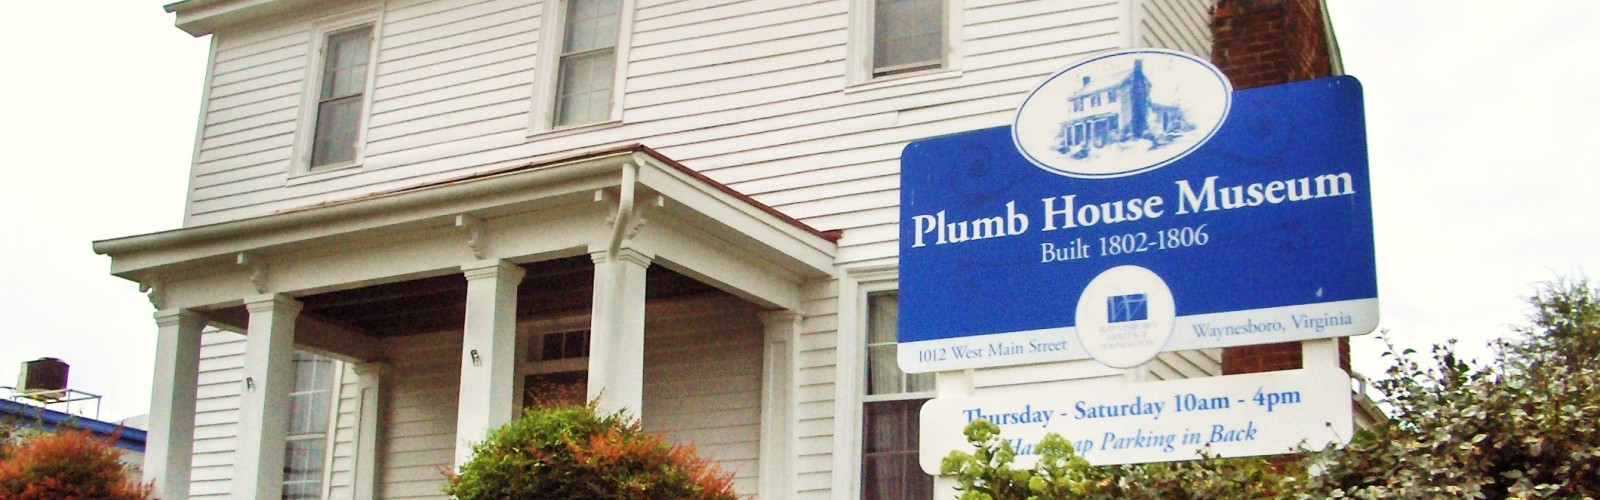 The Plumb House Museum